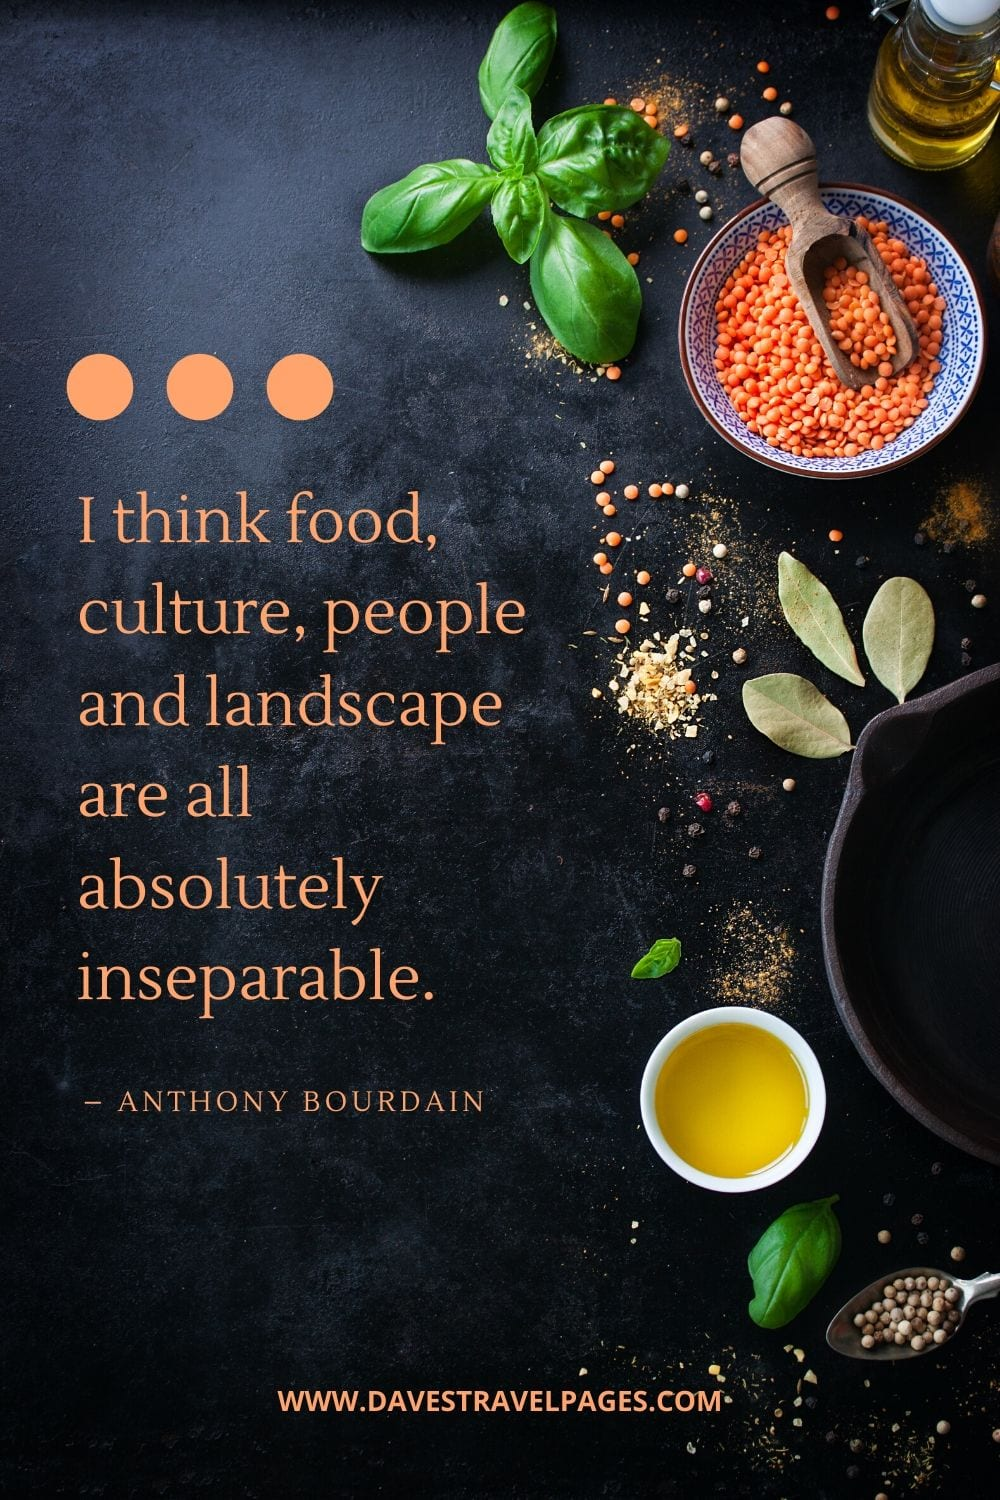 """Food and culture quote: """"I think food, culture, people and landscape are all absolutely inseparable.""""― Anthony Bourdain"""